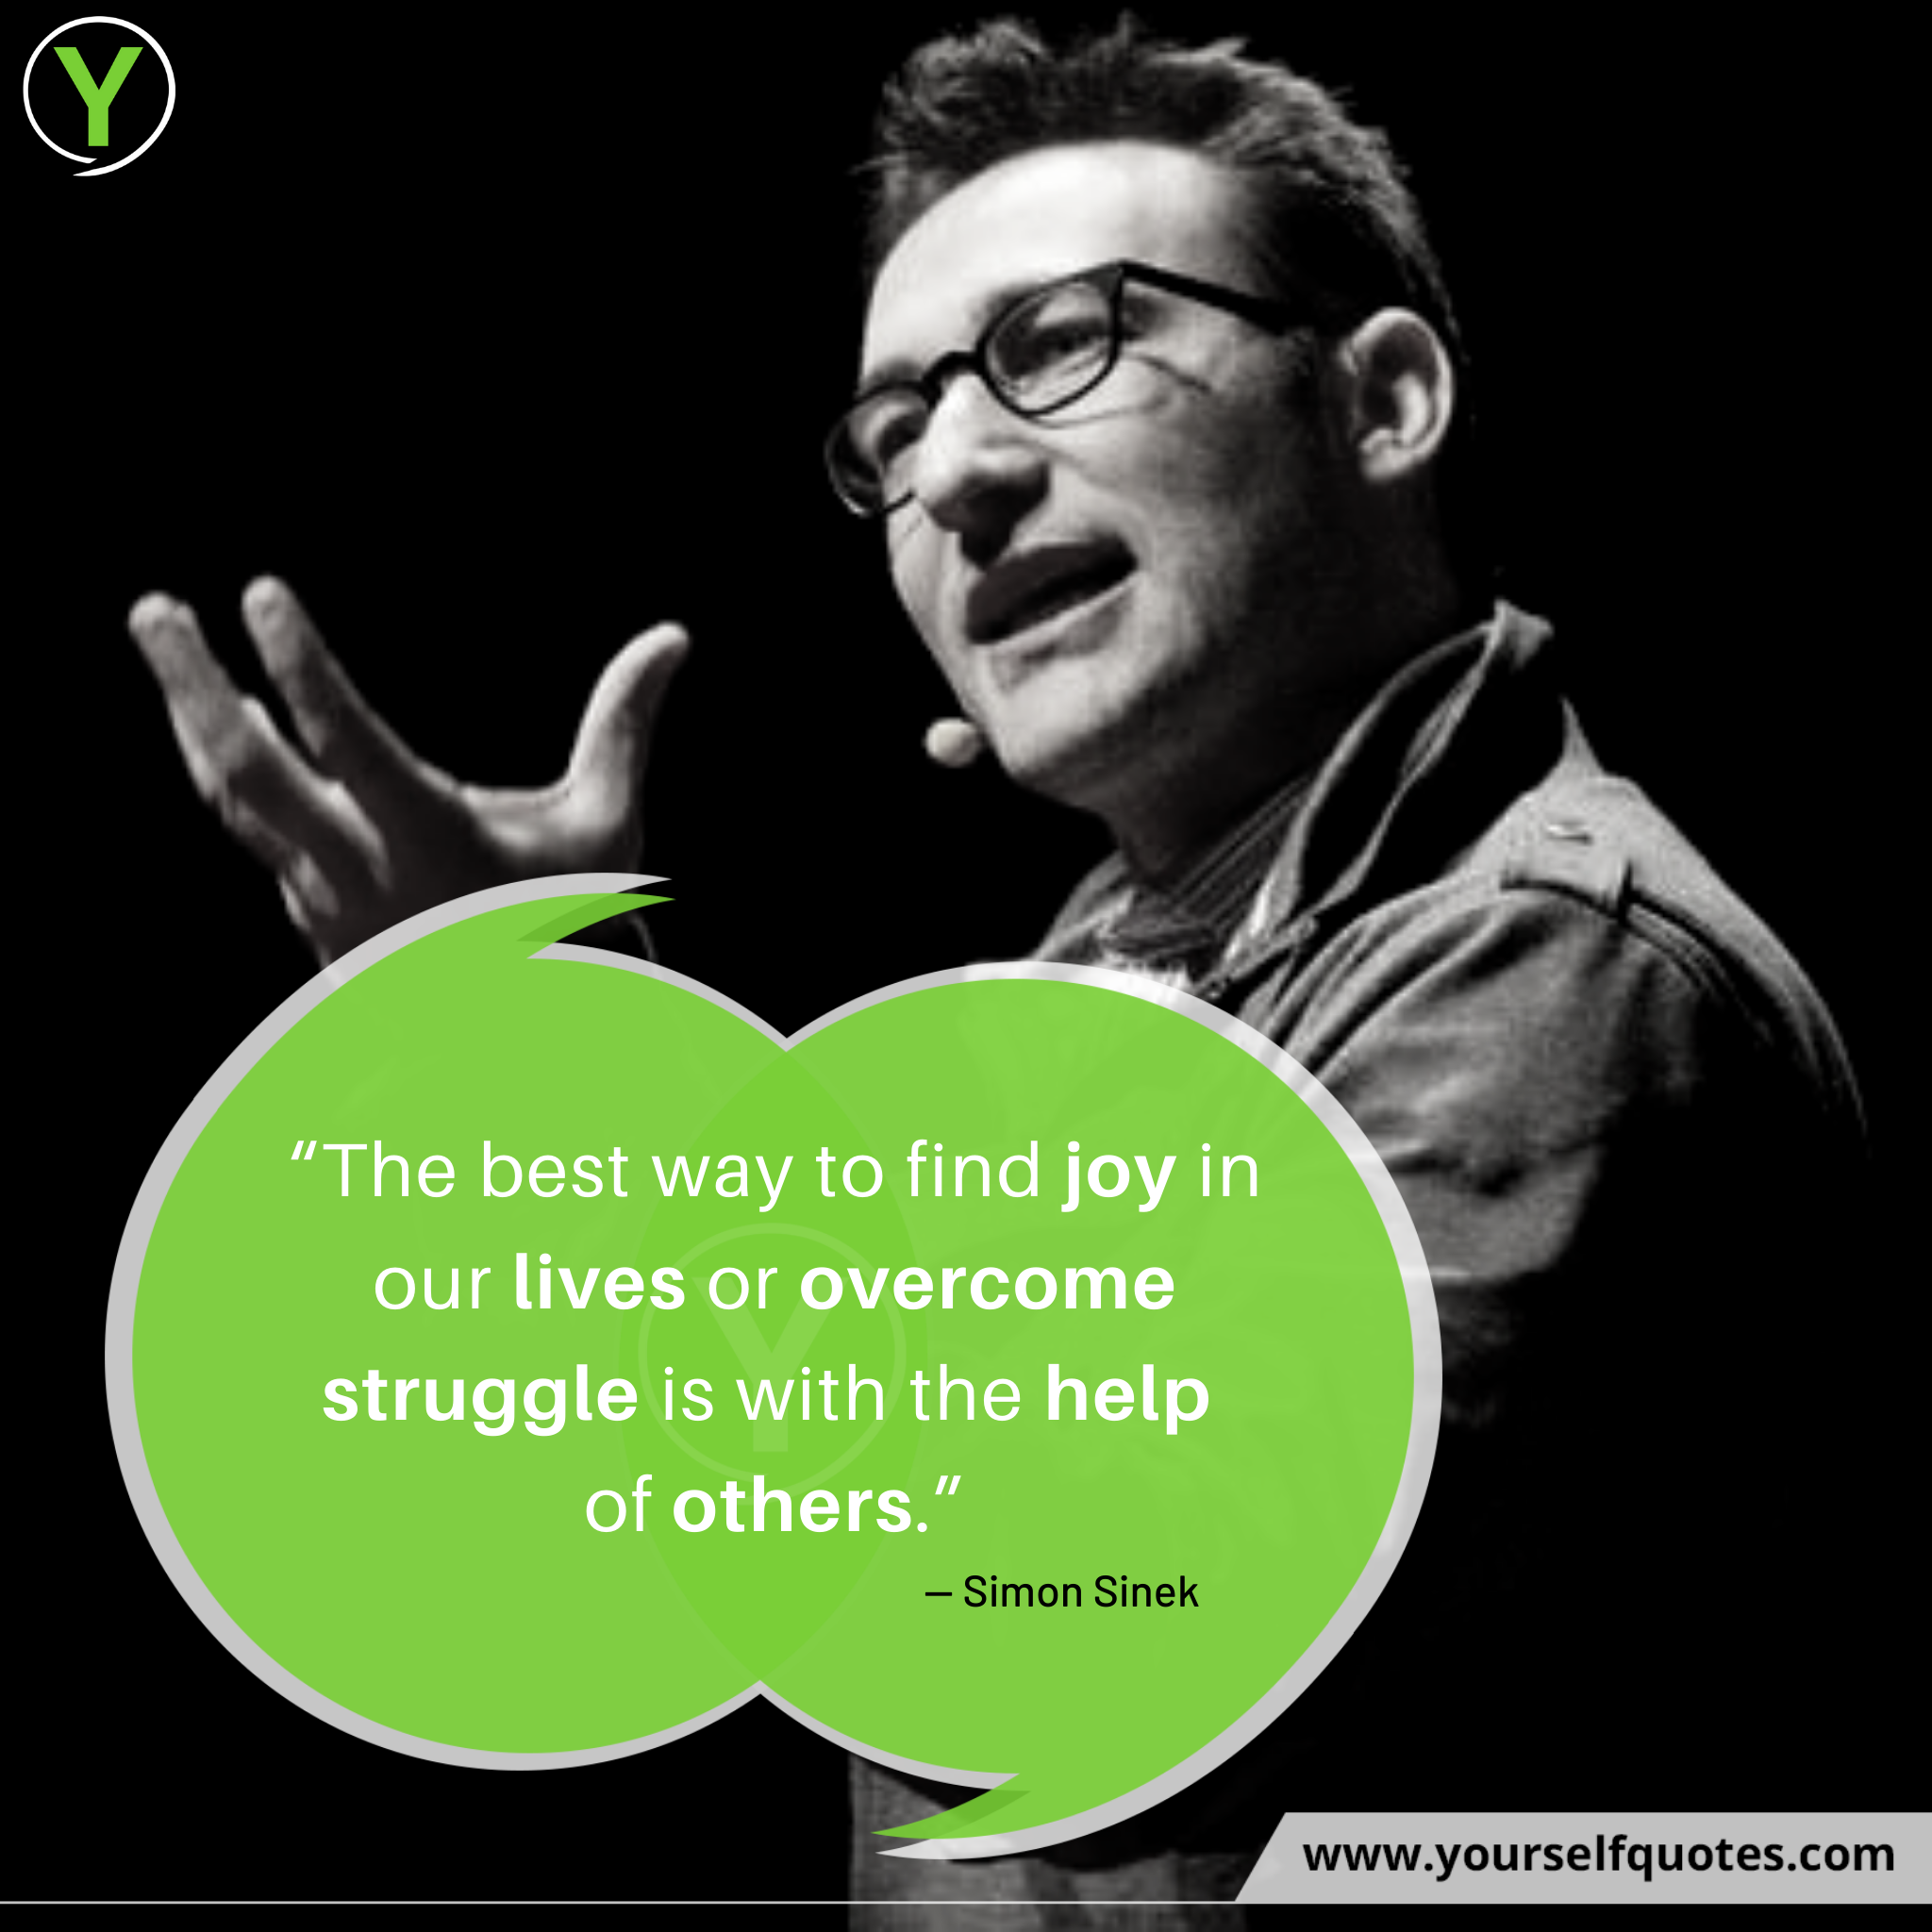 Quotes From Simon Sinek Images